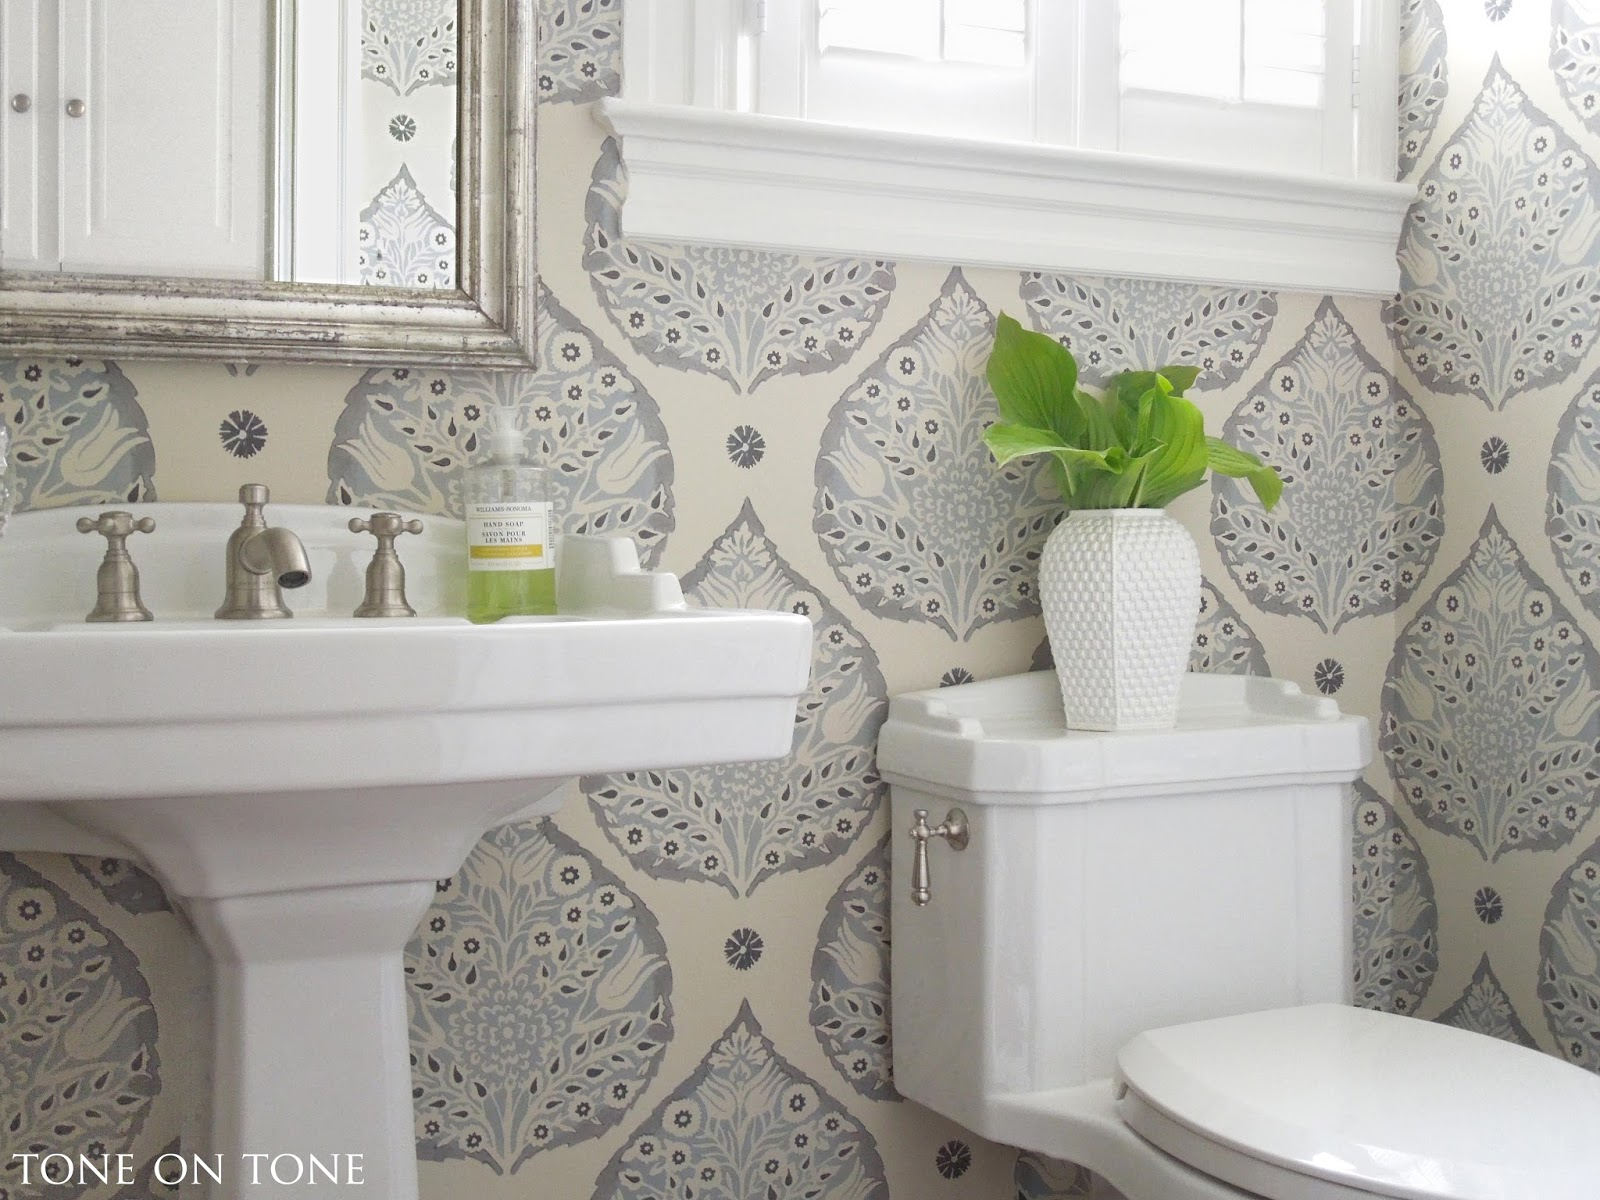 Tone on tone interior garden design powder room - Powder room wallpaper ideas ...